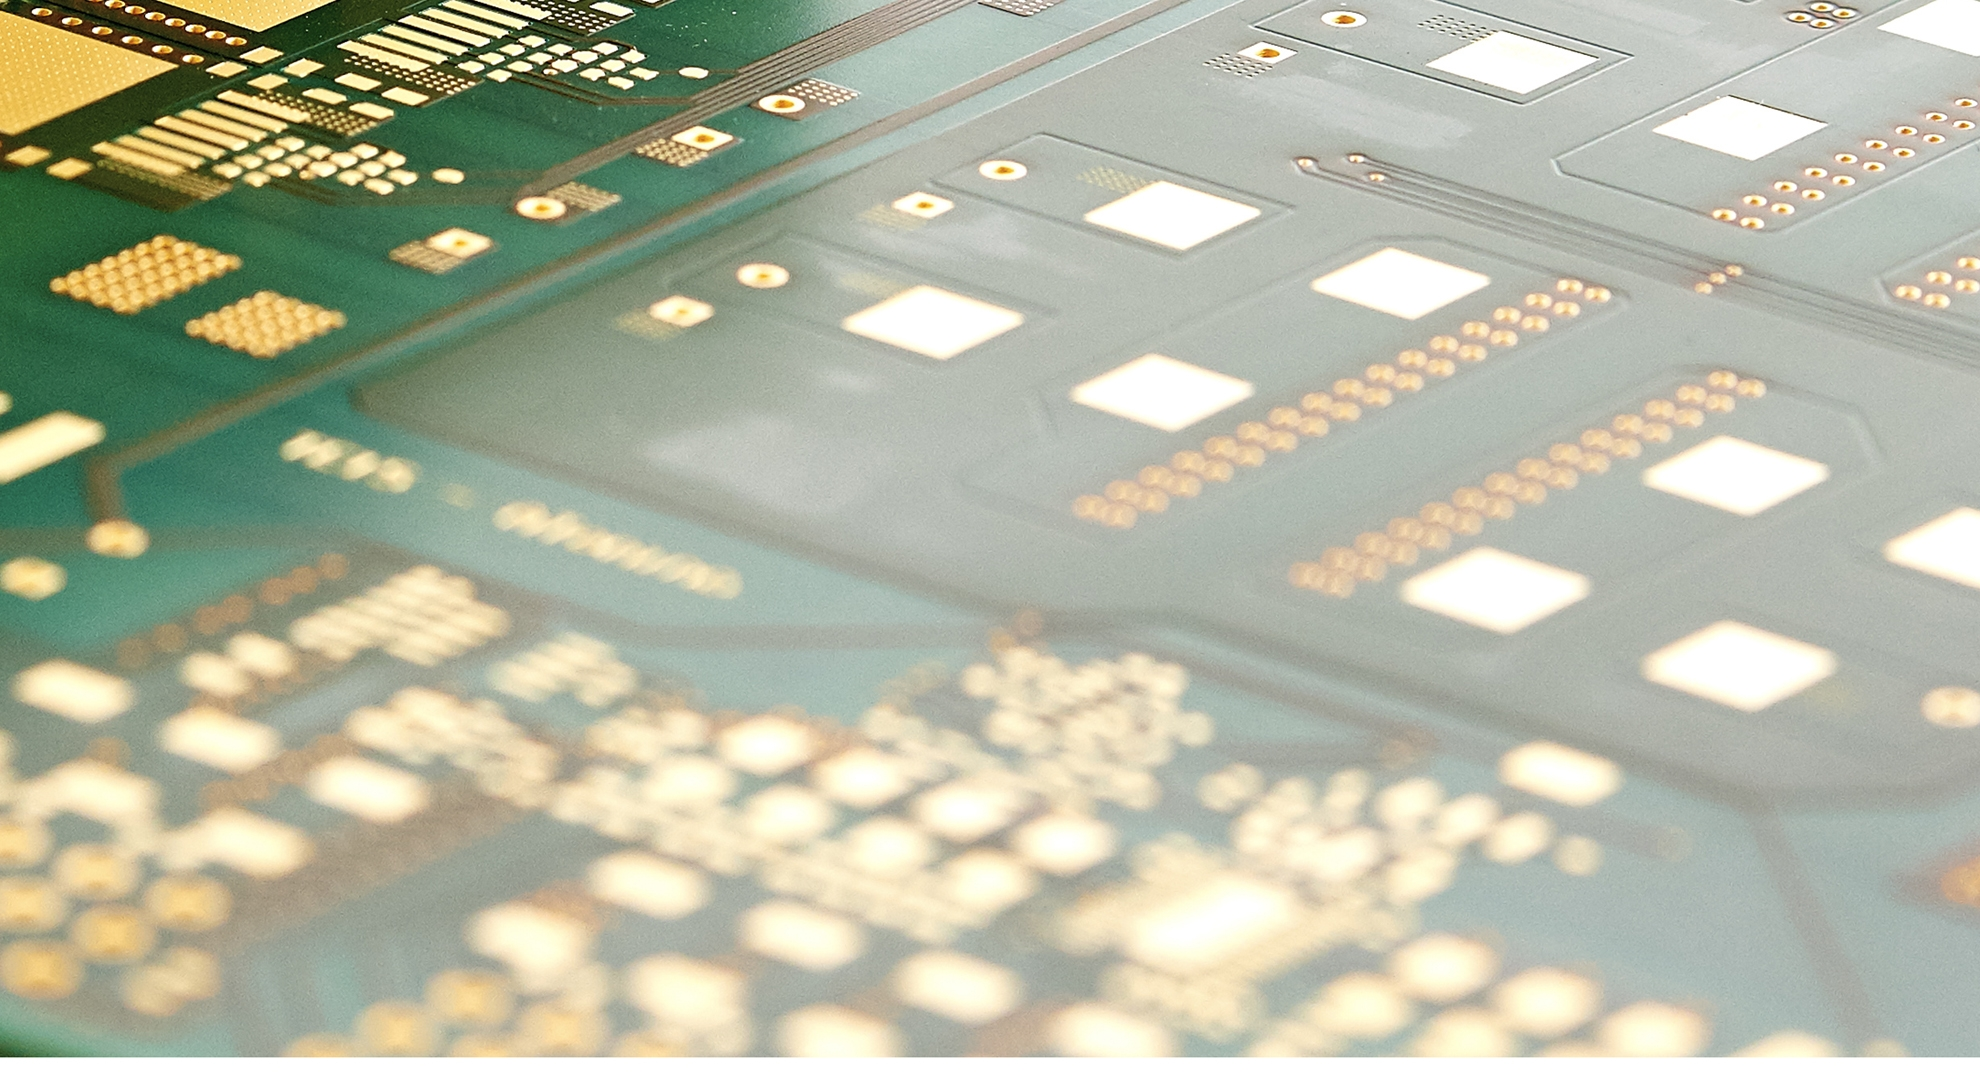 Soldering surface Printed circuit boards